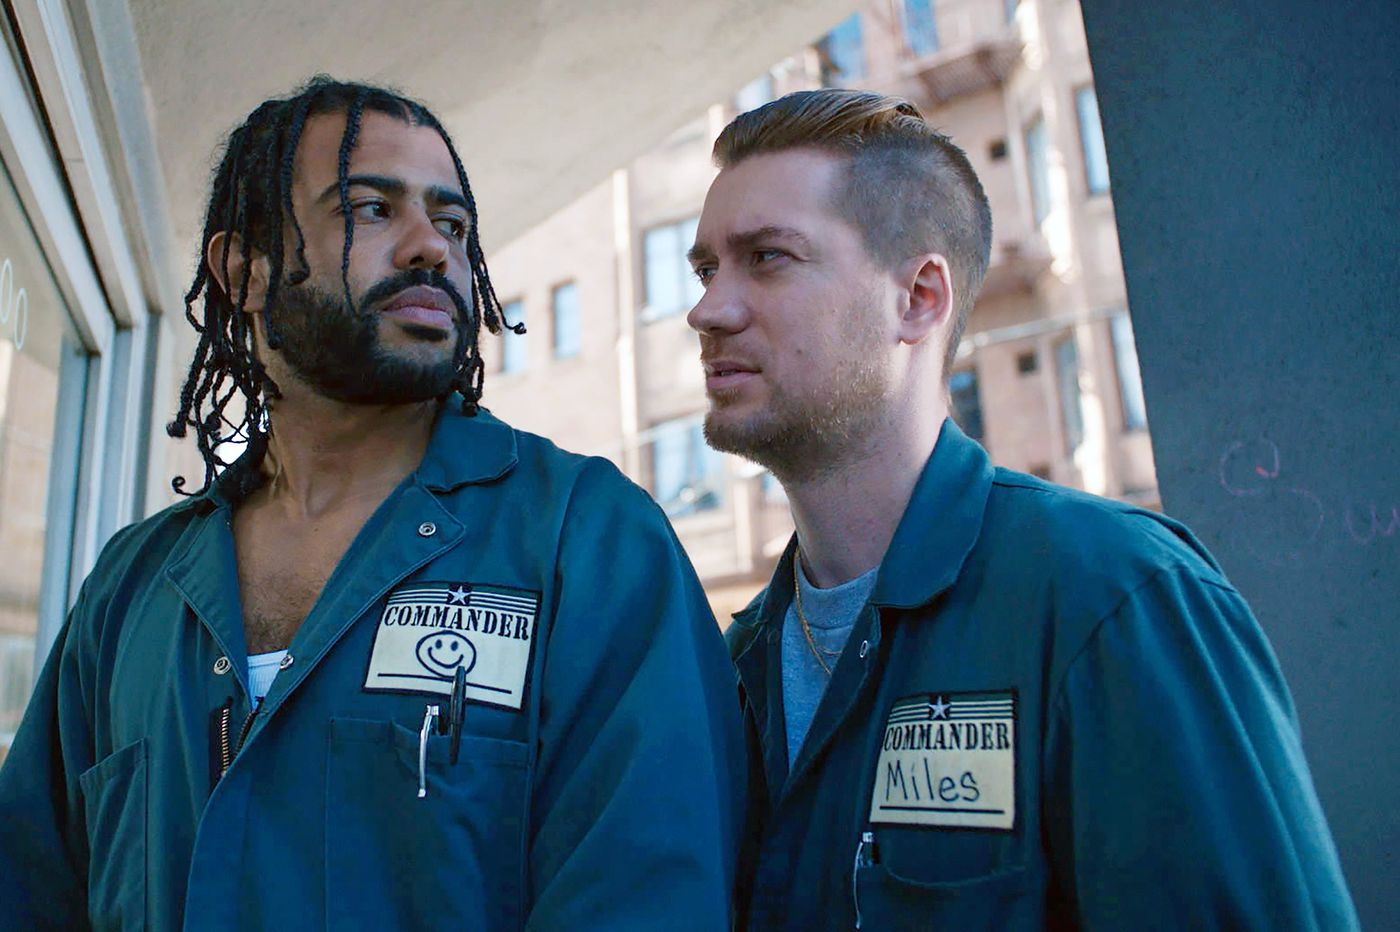 'Hamilton' star Daveed Diggs talks about his new movie, 'Blindspotting'